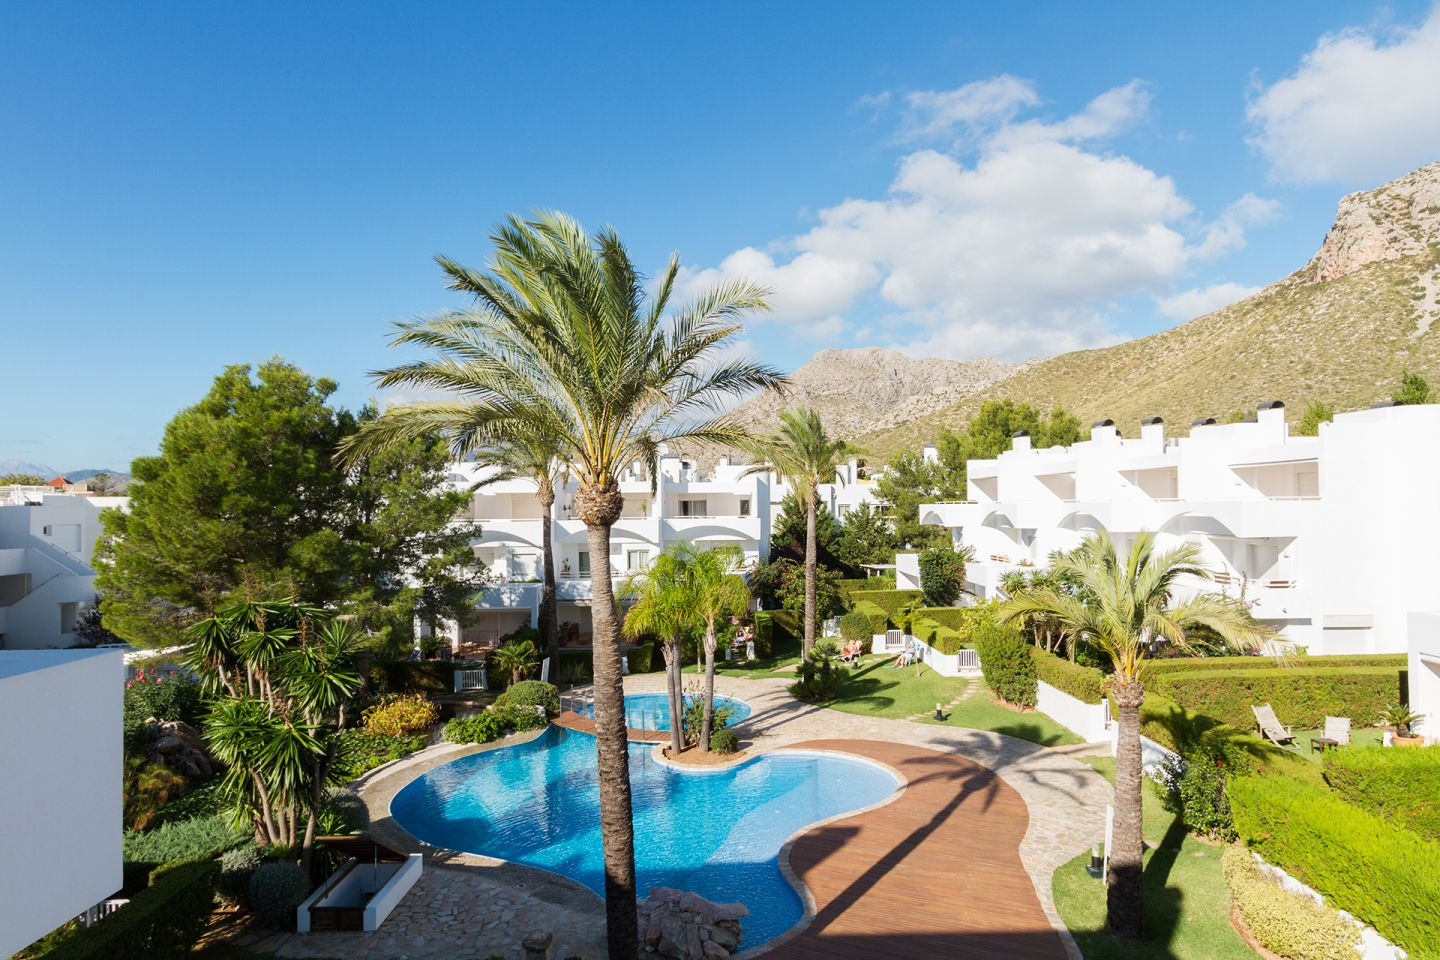 4 Bed Semidetached House for sale in PUERTO POLLENSA 0